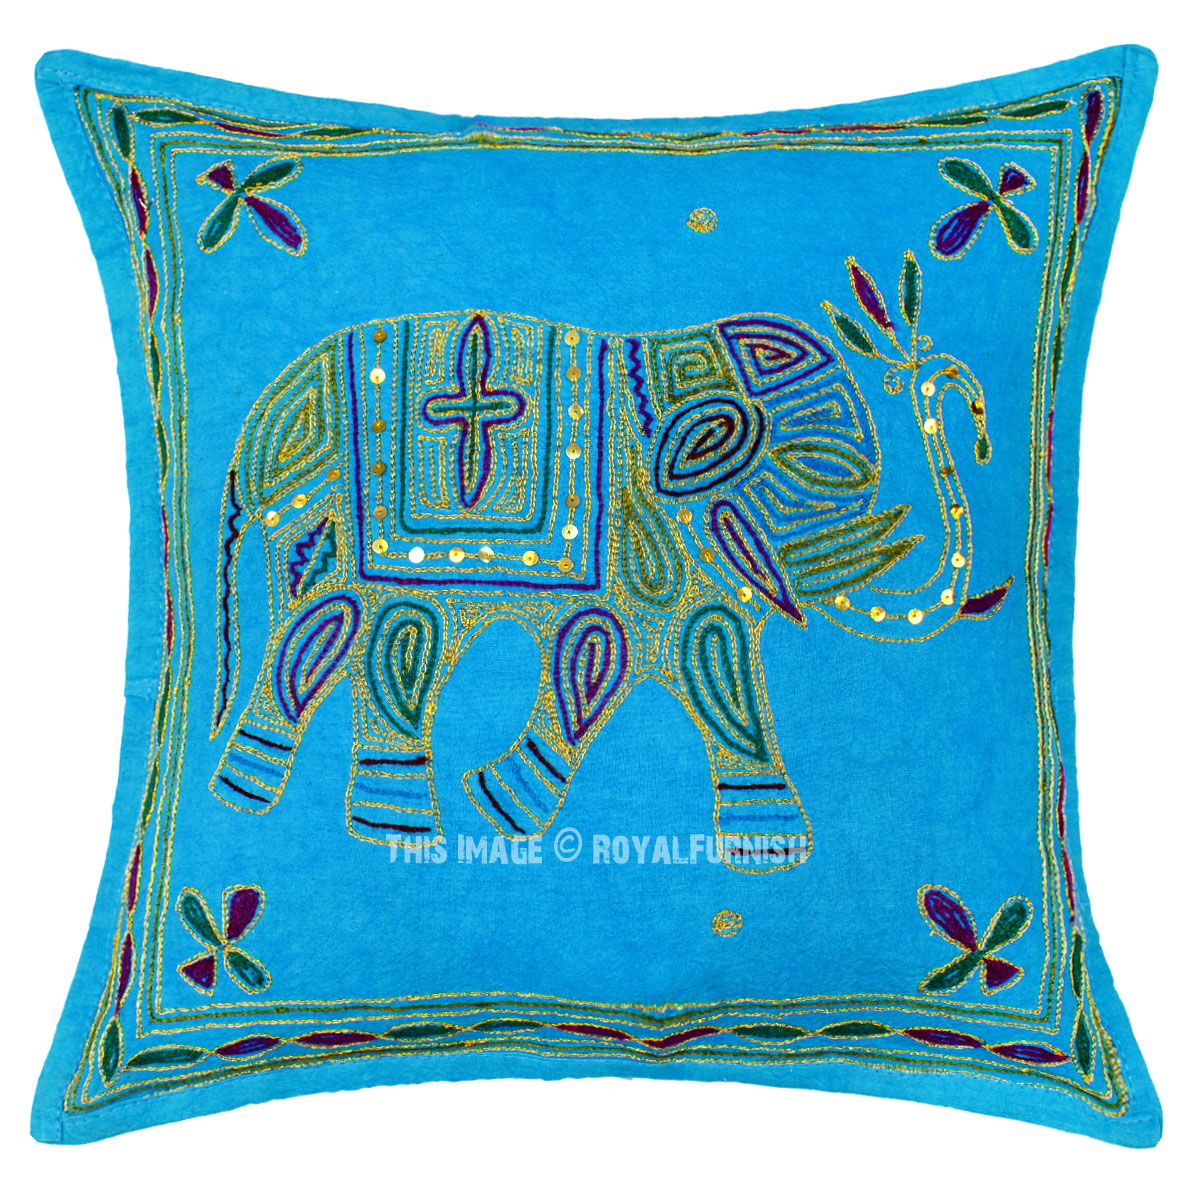 Turquoise Needlepoint 16X16 Decorative Embroidered Elephant Pillow Cover - RoyalFurnish.com